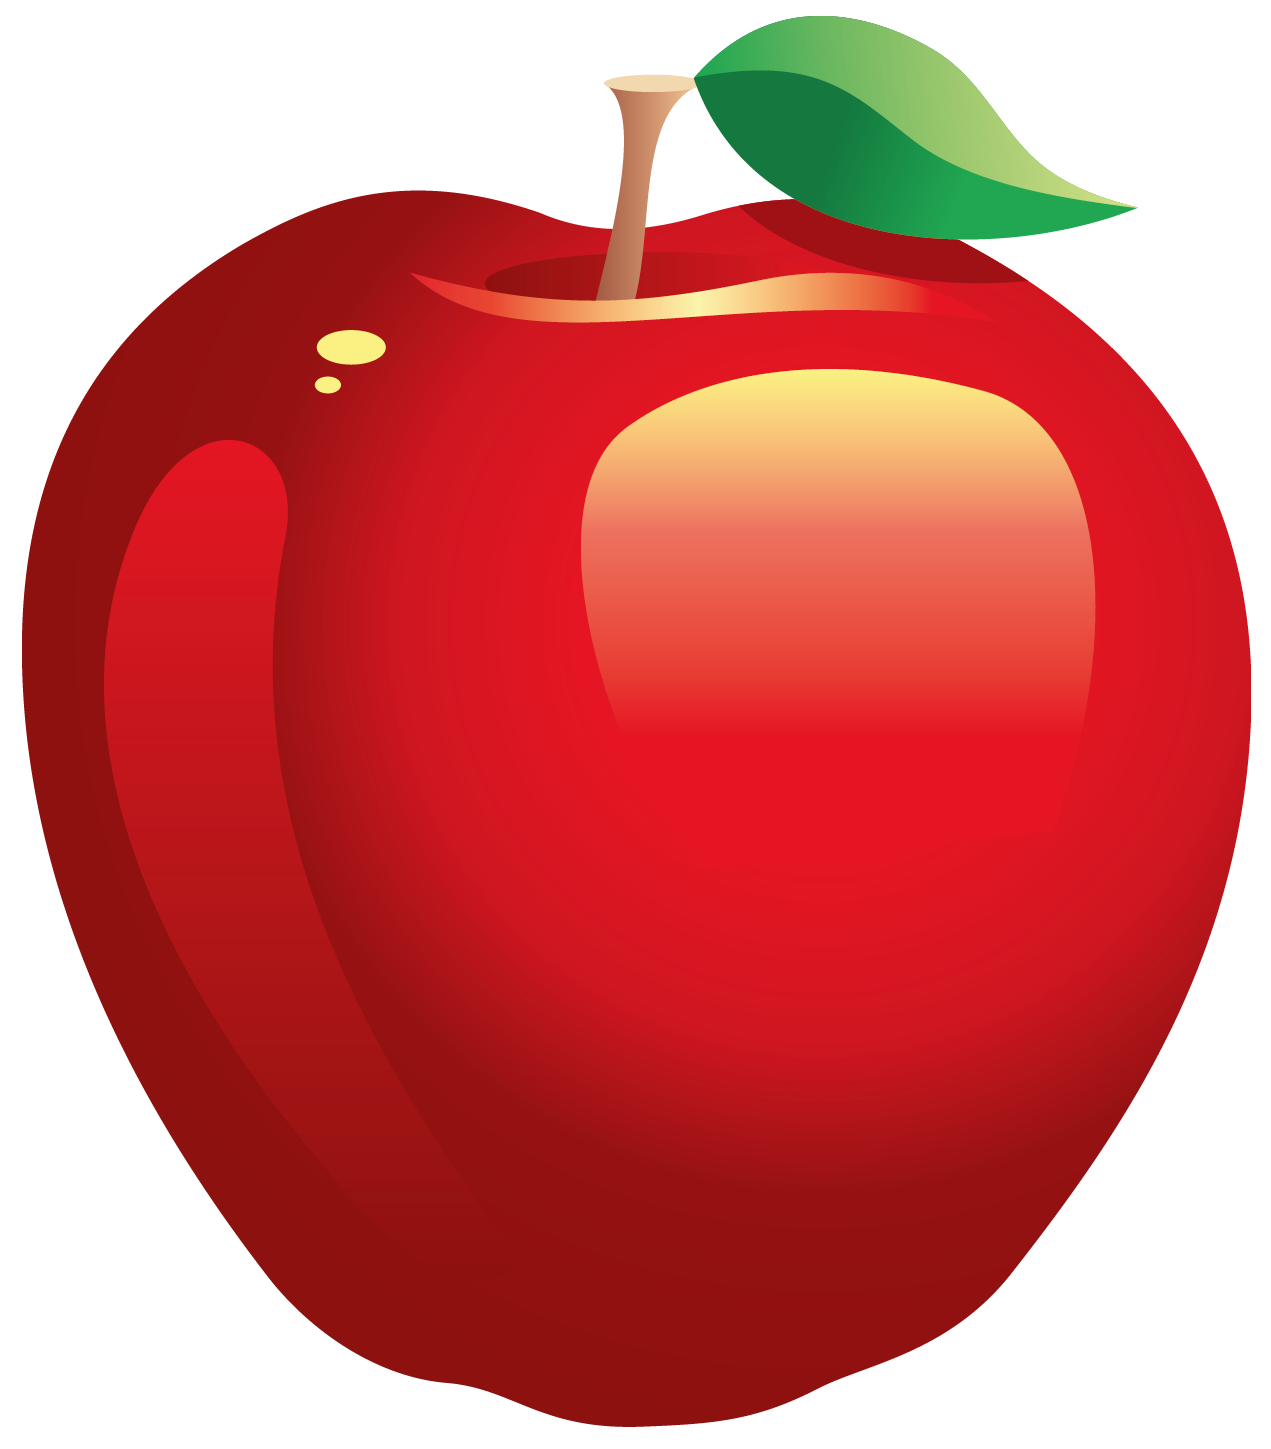 Large Painted Red Apple PNG Clipart.